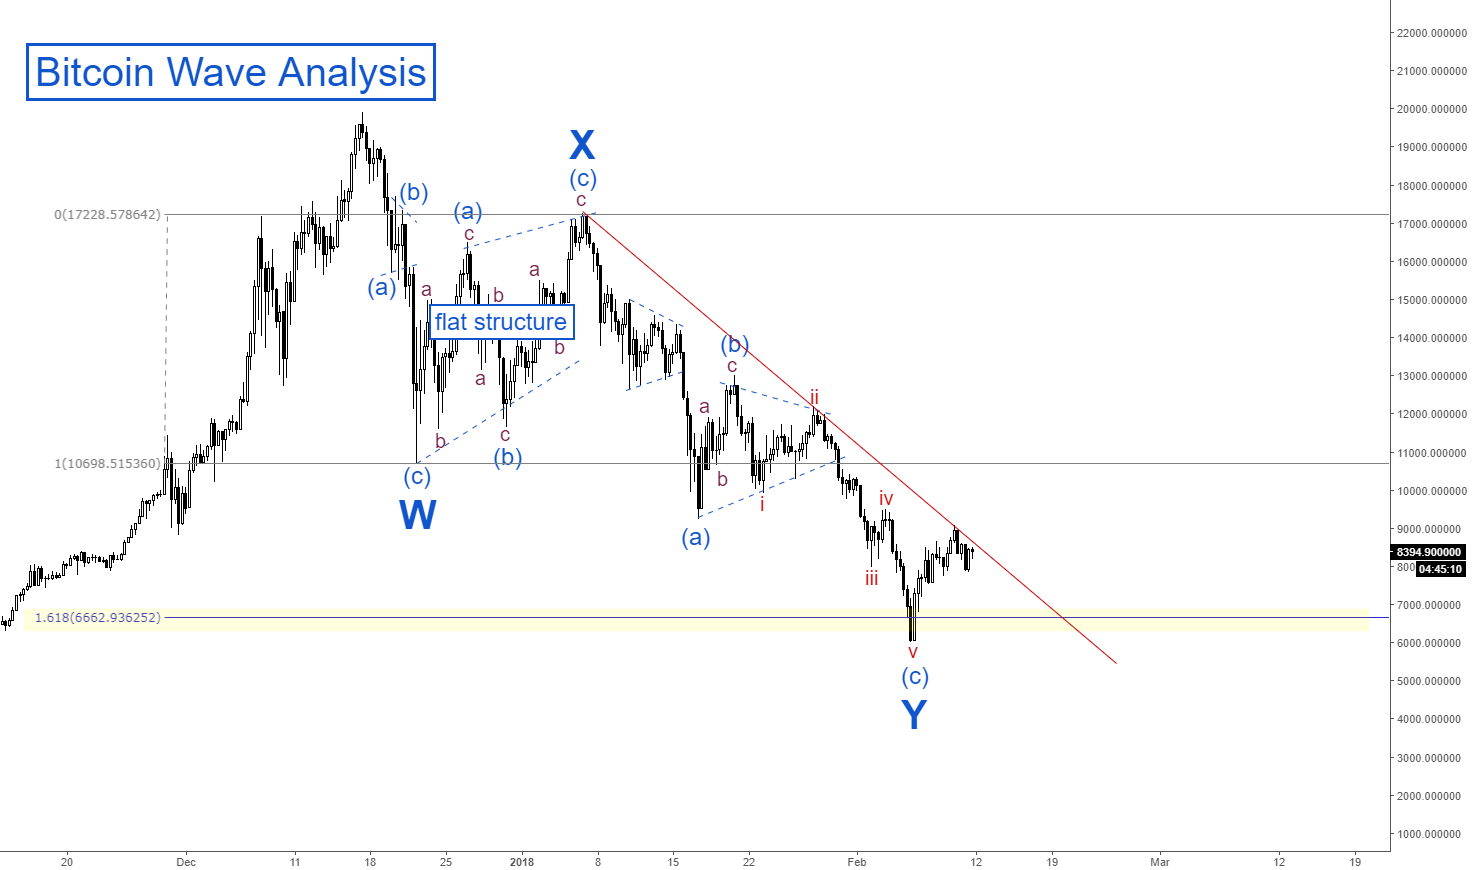 Bitcoin Wave Analysis - (WXY)